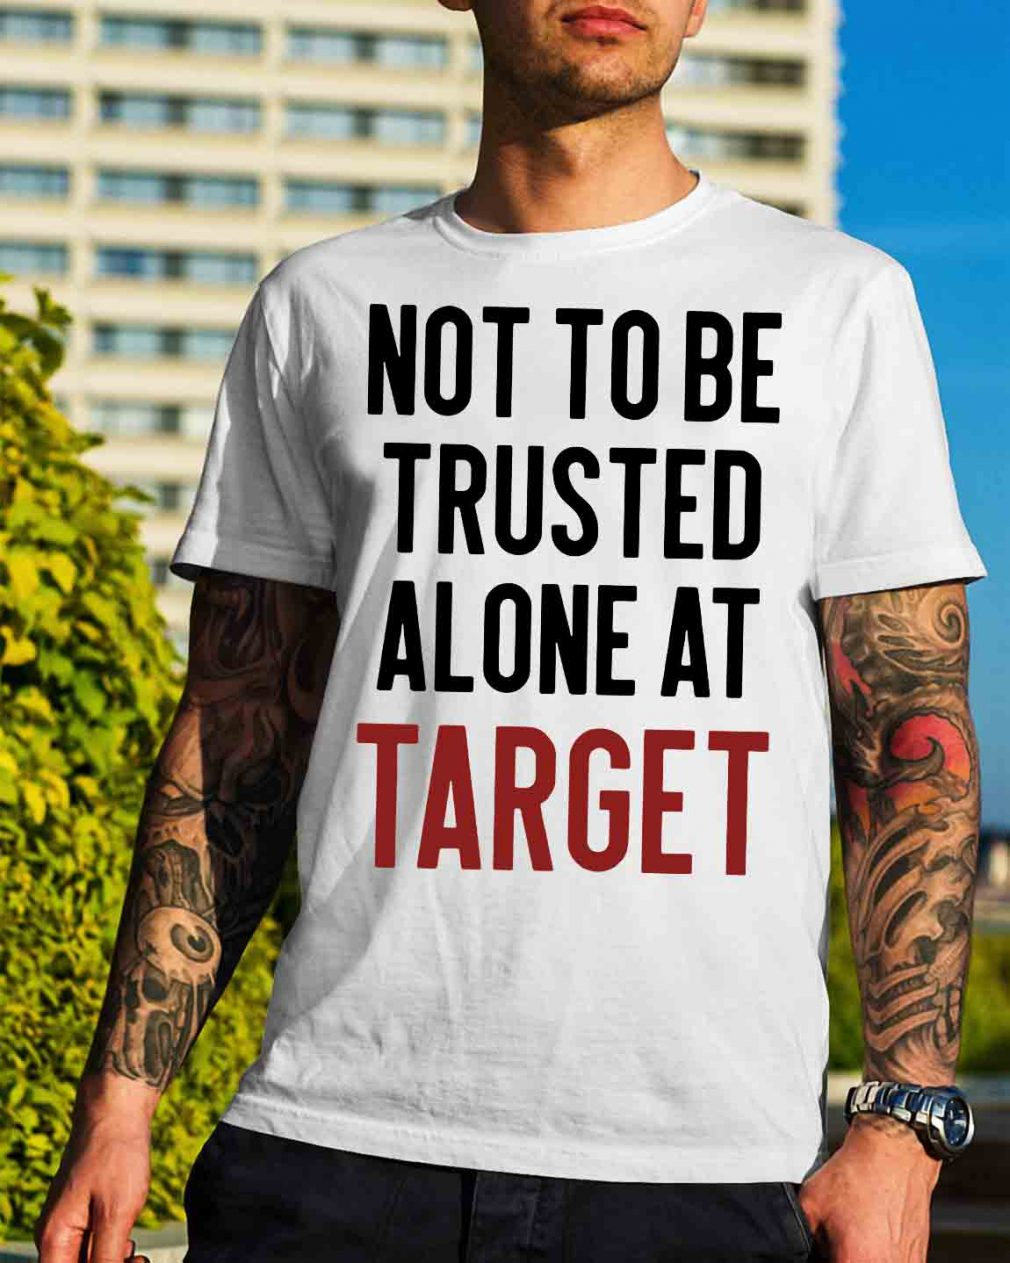 Not to be trusted alone at target shirt